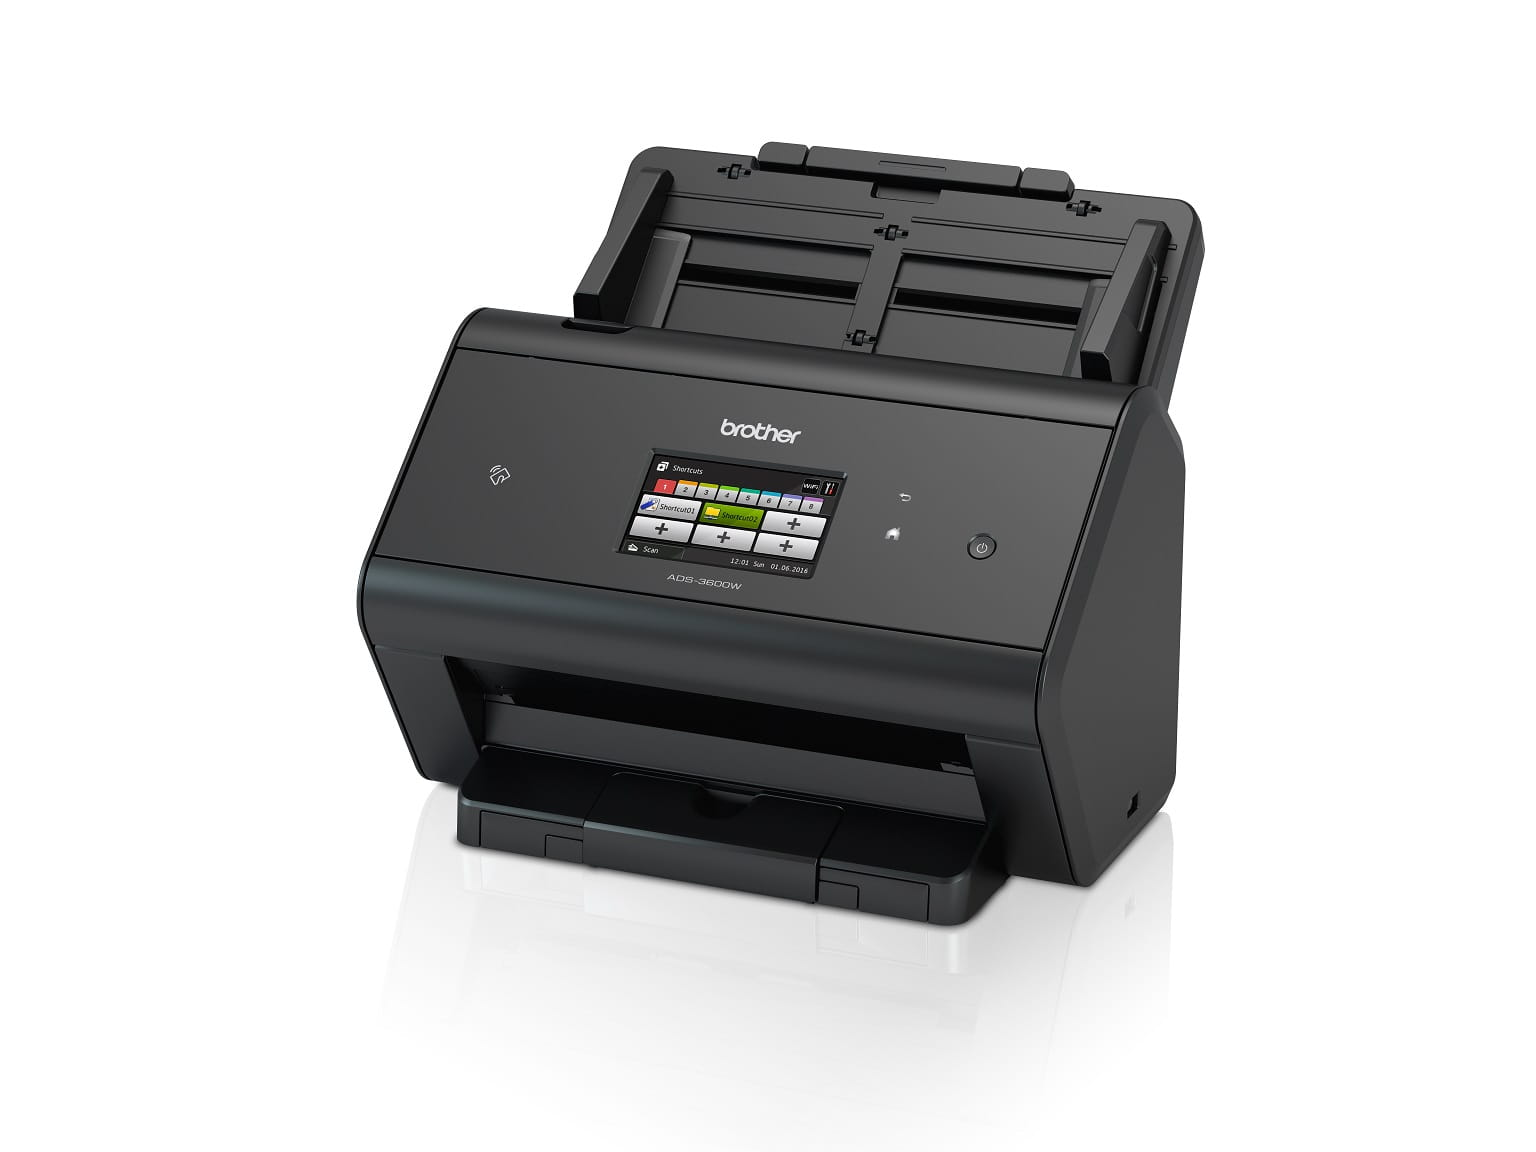 Scanner desktop Brother professionale con WiFi e display touchscreen